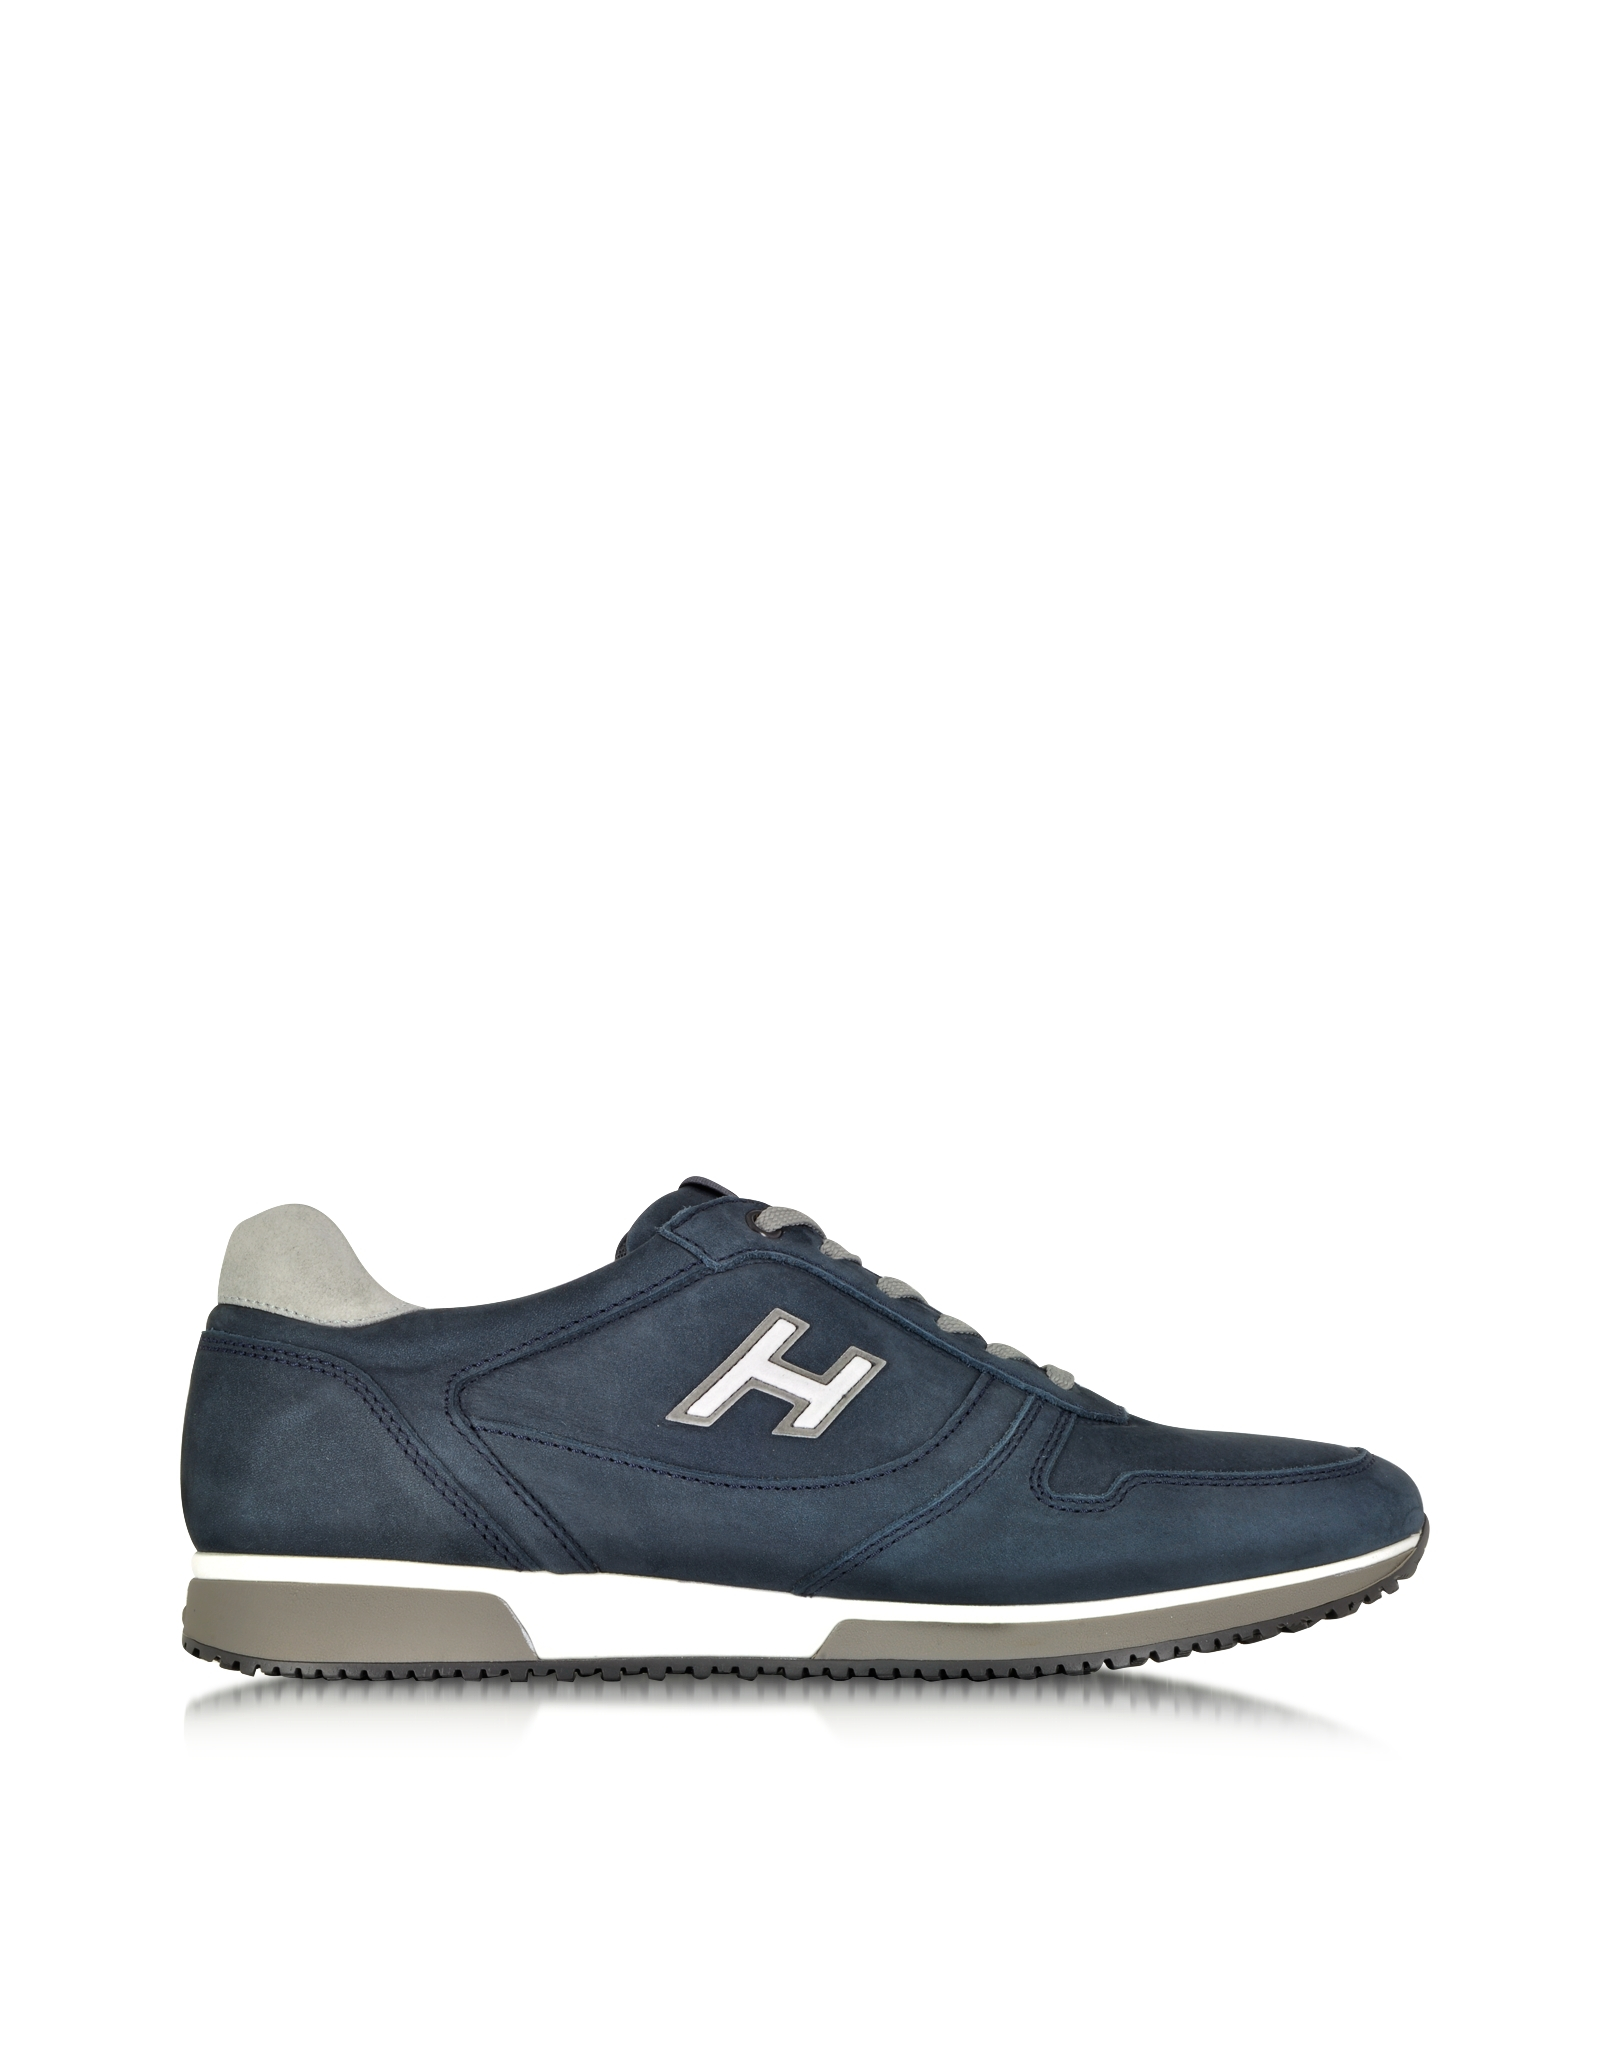 hogan h198 slash h flock sneaker in blue for men lyst. Black Bedroom Furniture Sets. Home Design Ideas